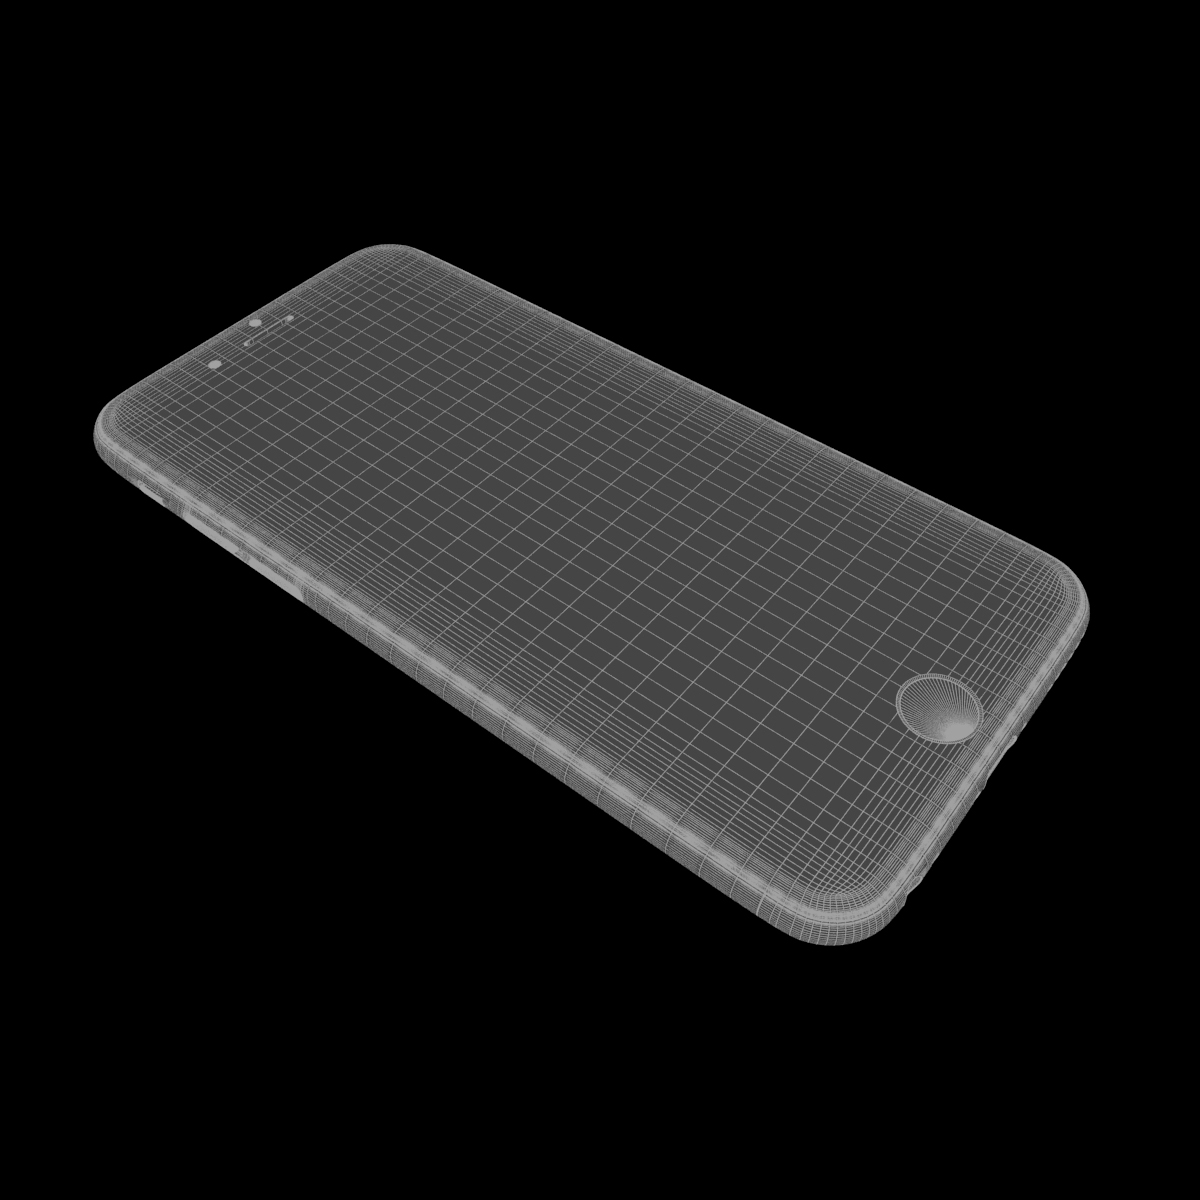 apple iphone 6s 3d model max fbx ma mb texture obj 278462